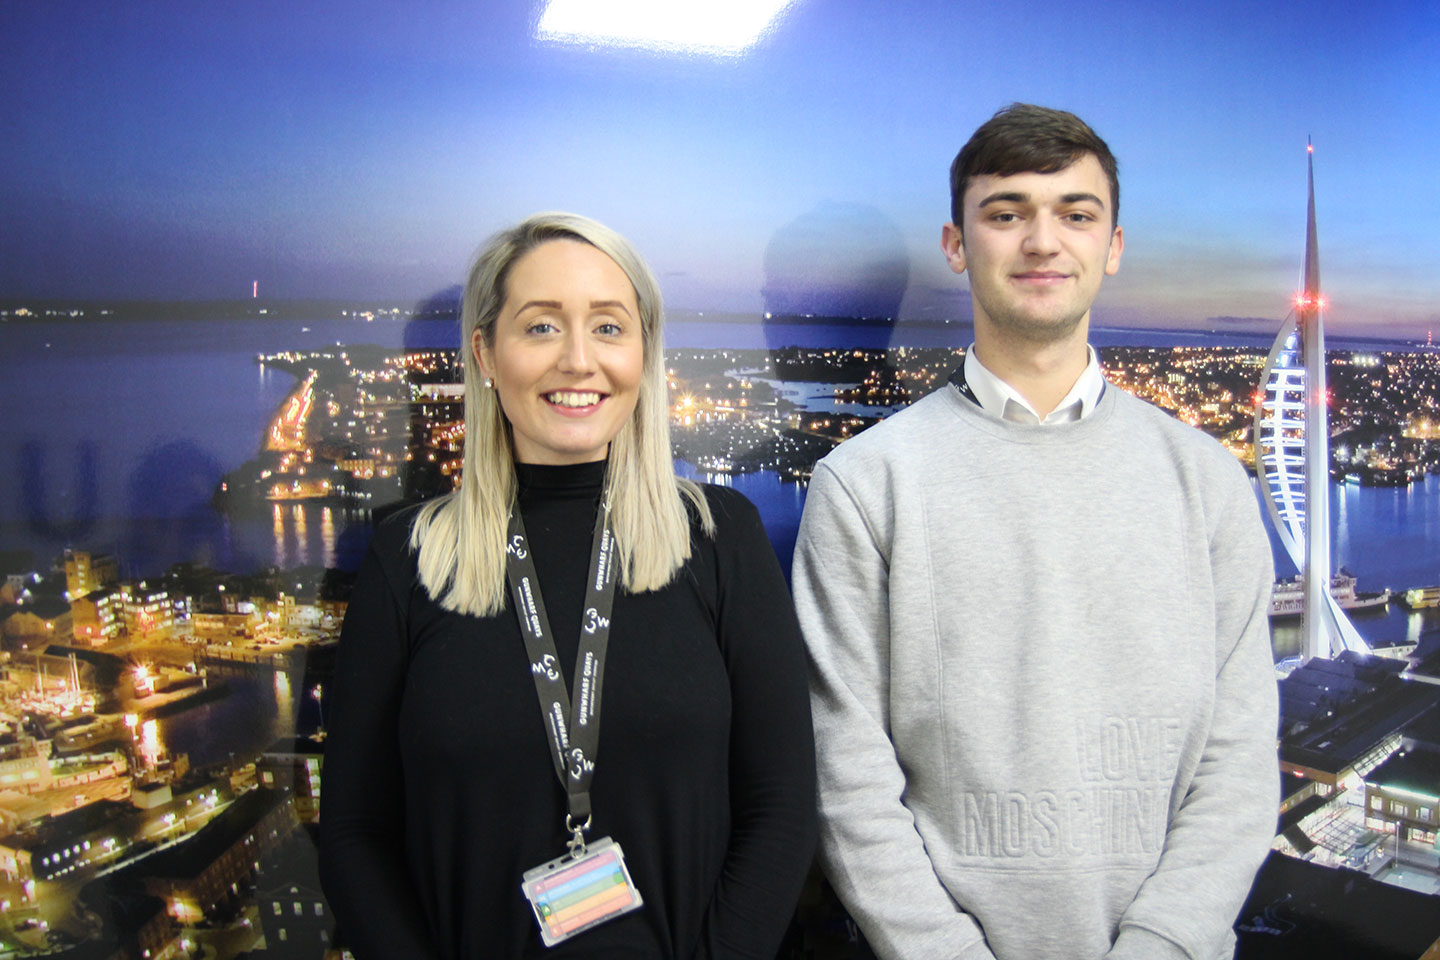 Landsec's Rebekah Reynolds stands next to apprentice Ethan Raleigh